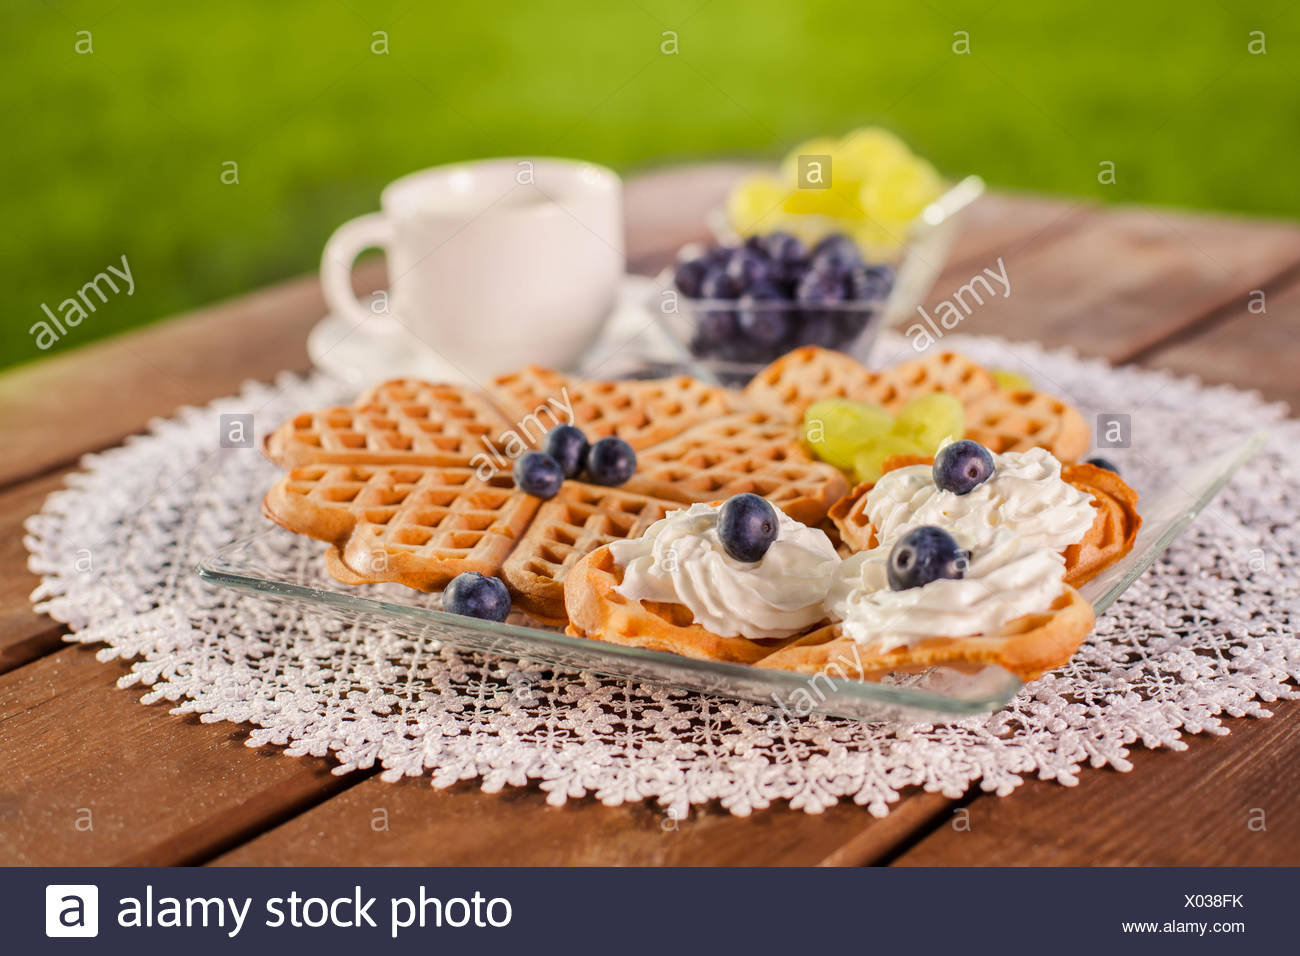 Sweet breakfast on wooden table in the garden. Debica, Poland - Stock Image